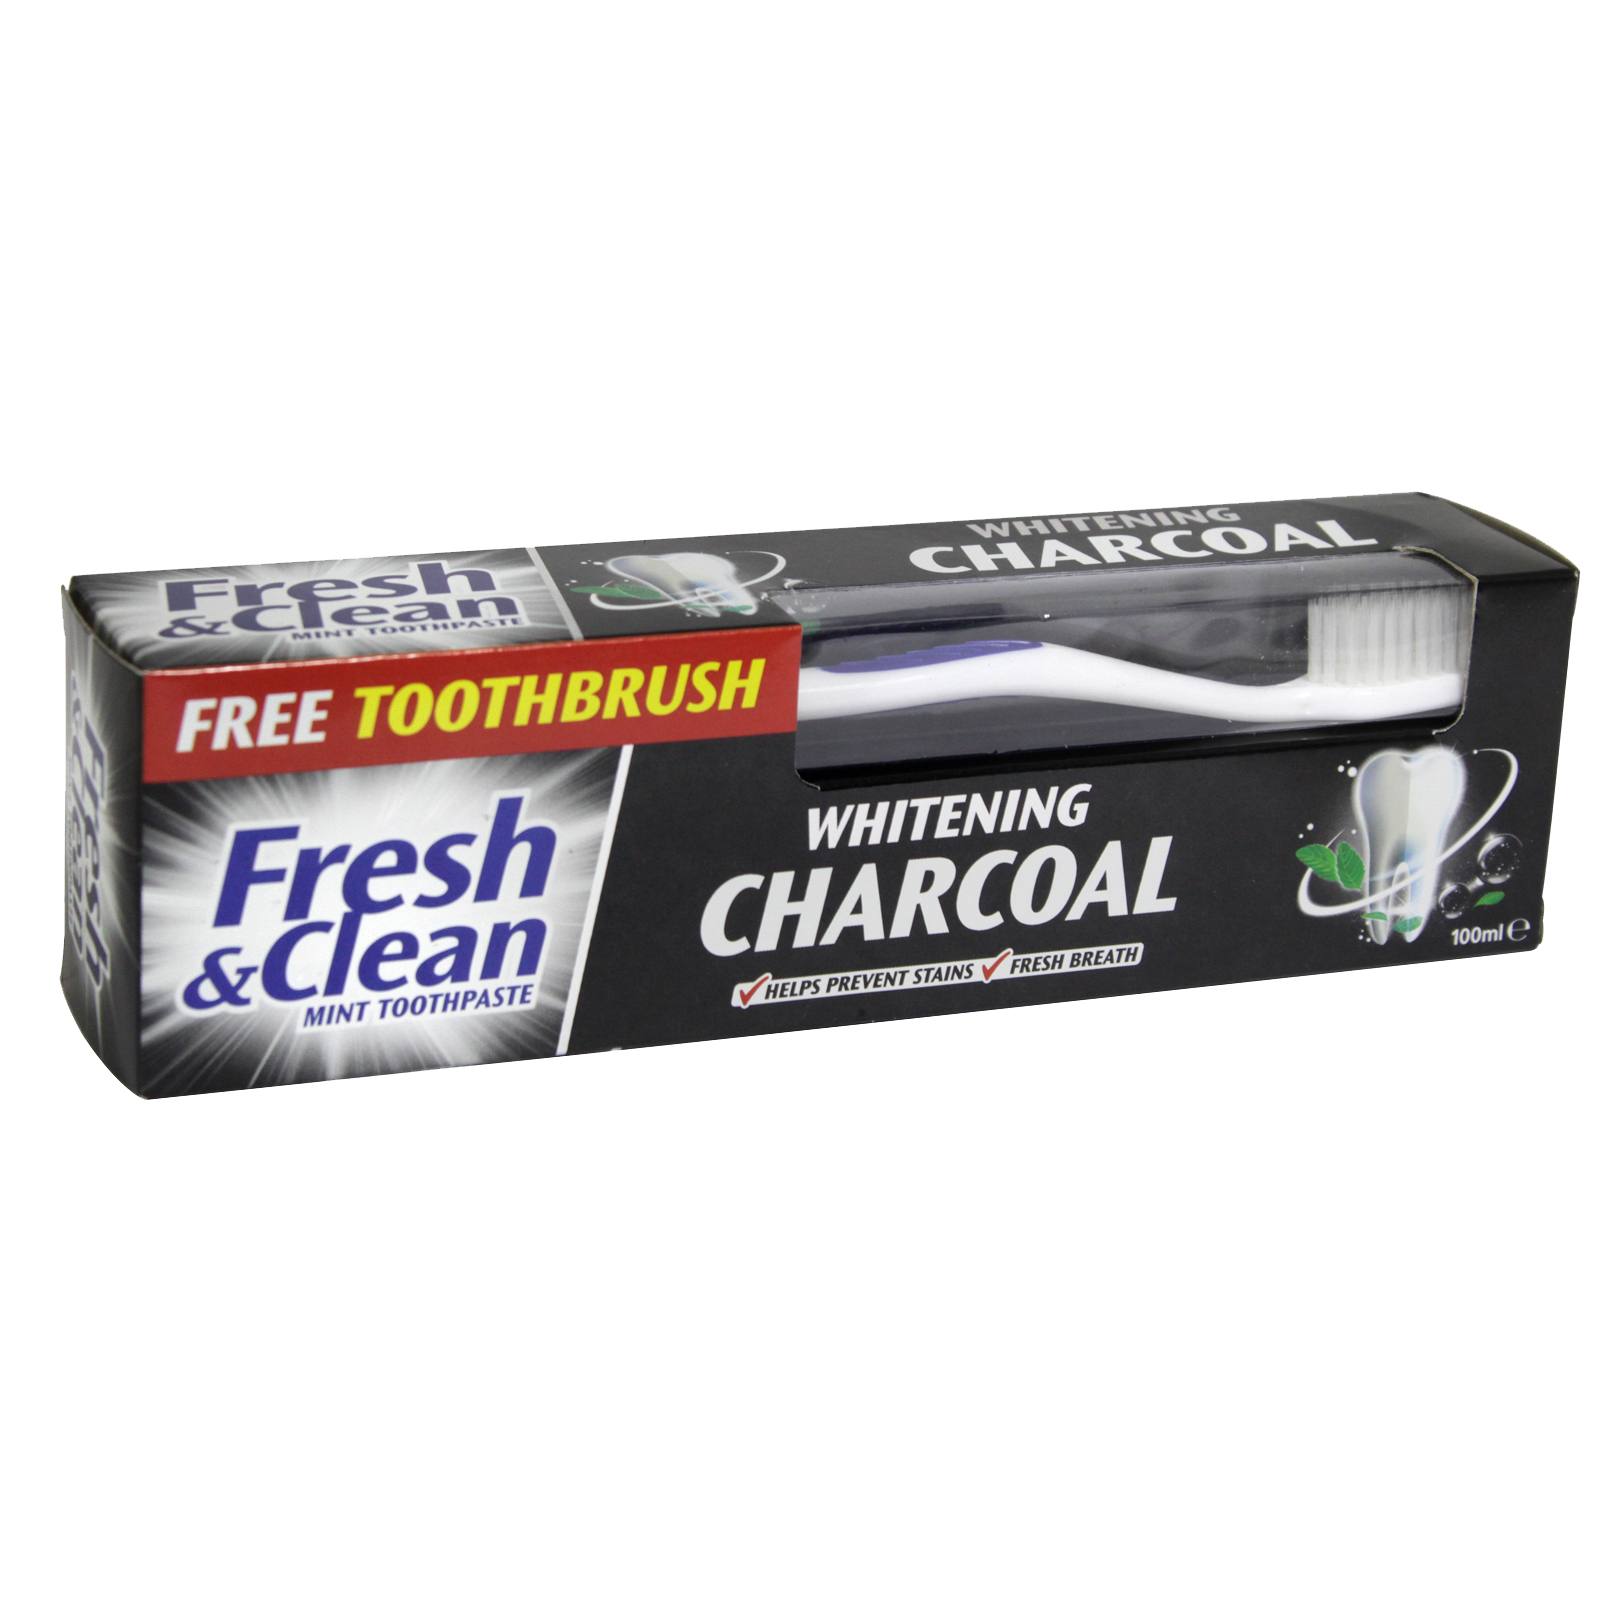 FRESH+CLEAN TOOTHPASTE 100ML+TOOTHBRUSH FOC WHITENING CHARCOAL